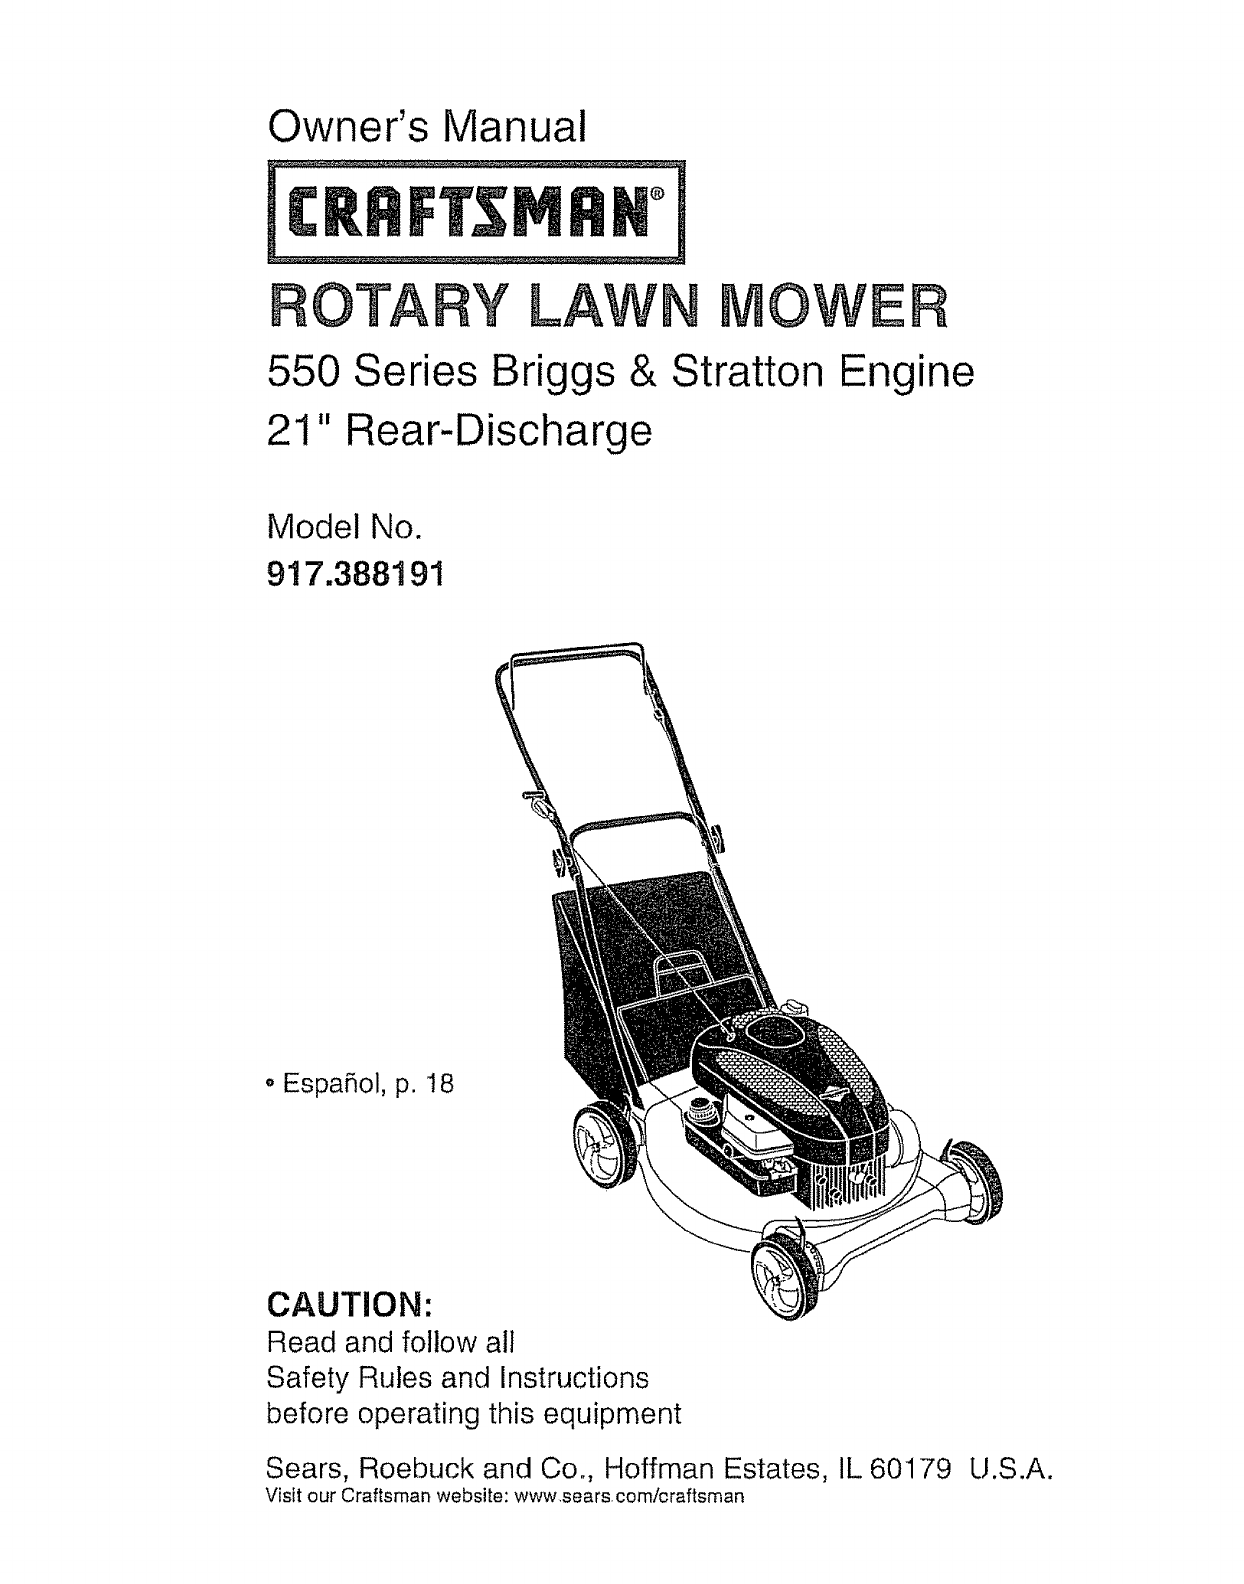 af9126e1 c48e 4b4a a14c 2da8763cdcd7 bg1 craftsman lawn mower 917 388191 user guide manualsonline com craftsman lawn mower model 917 wiring diagram at creativeand.co